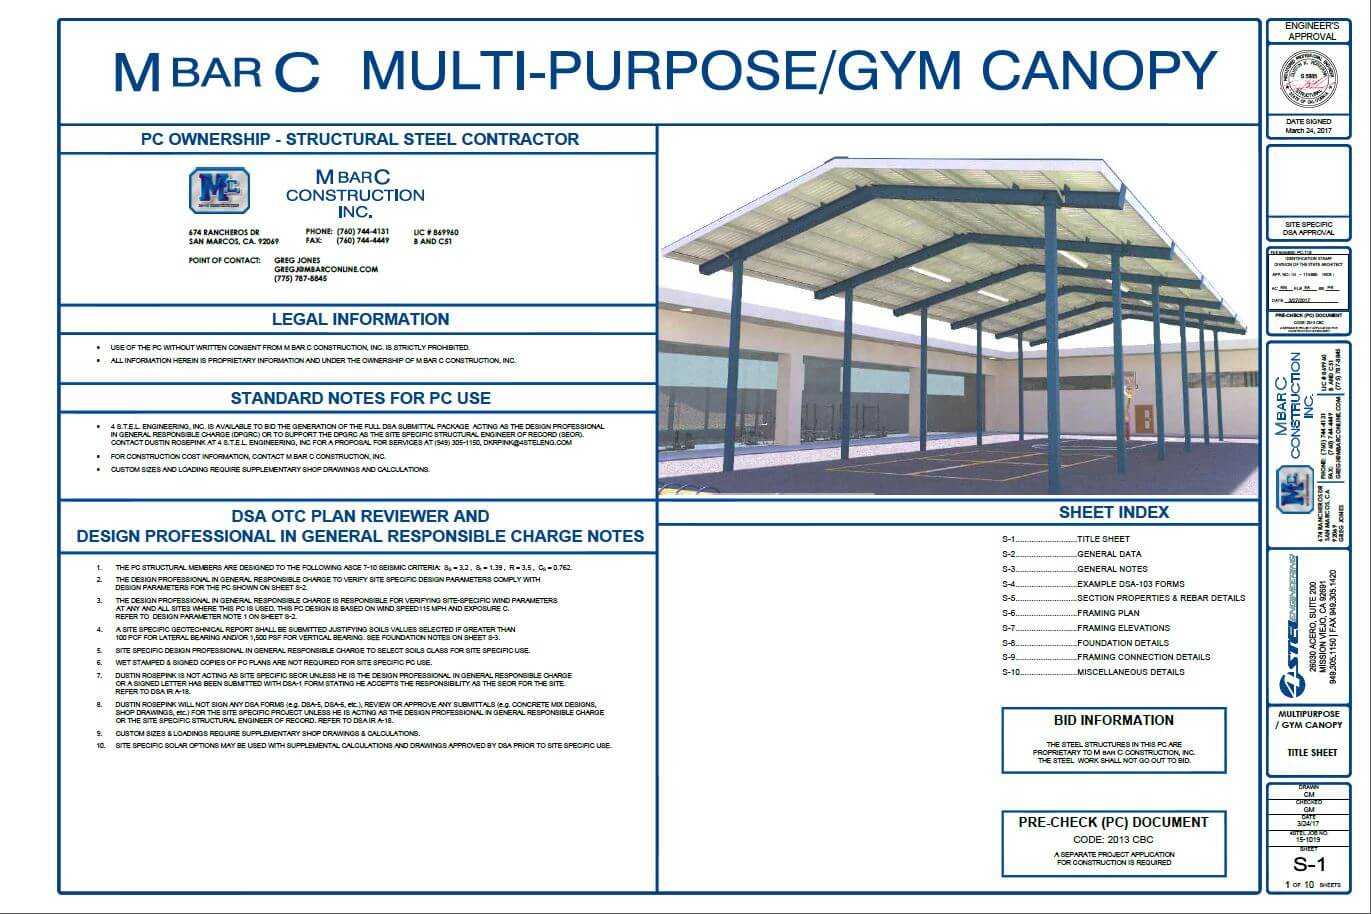 for immediate release: dsa multi-purpose gym canopy